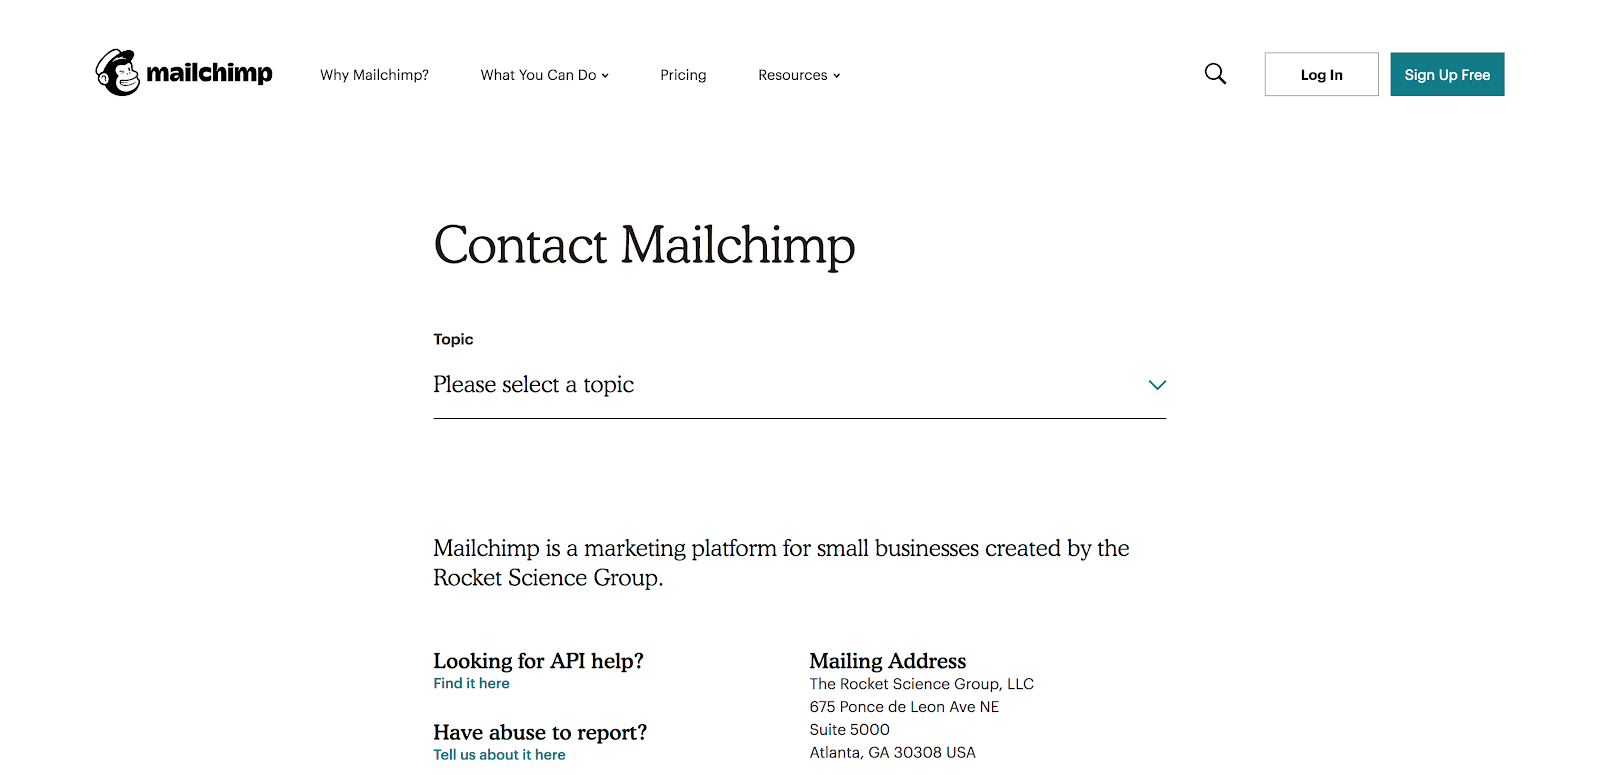 Mailchimp Contact Us